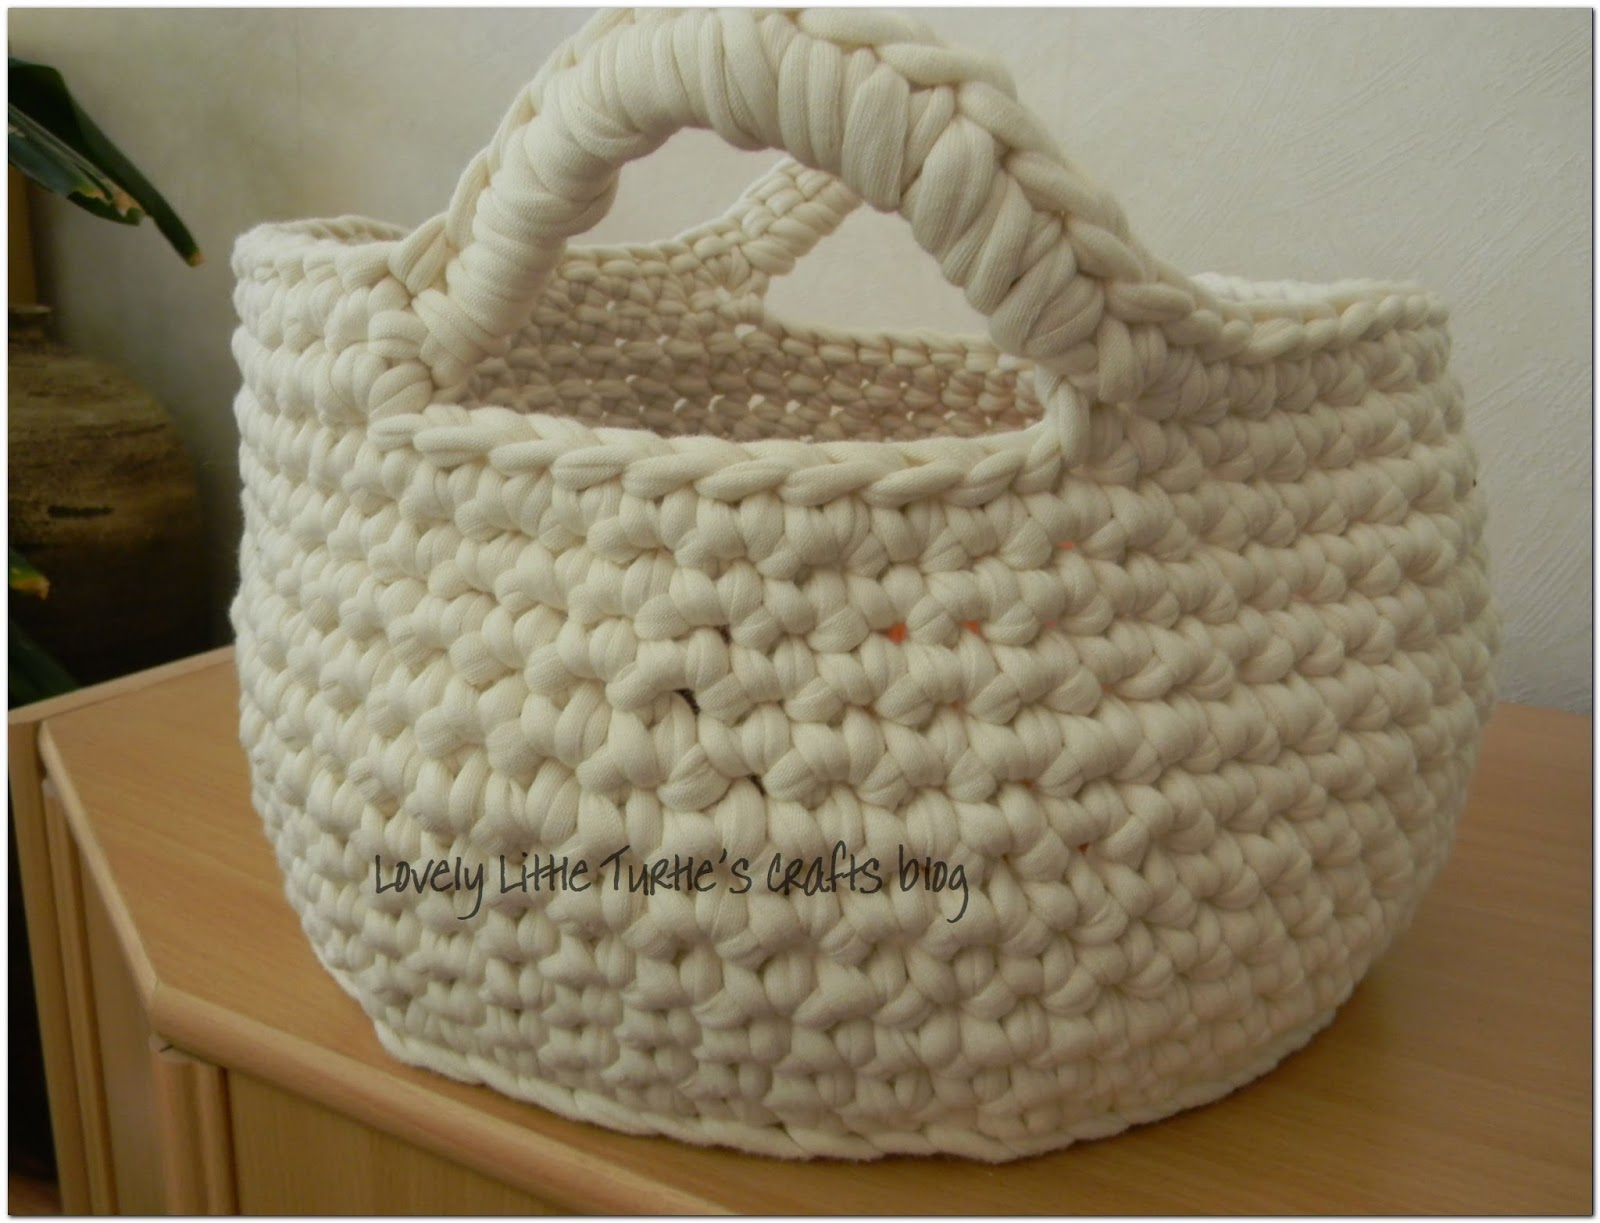 Crocheted basket from tricot yarn